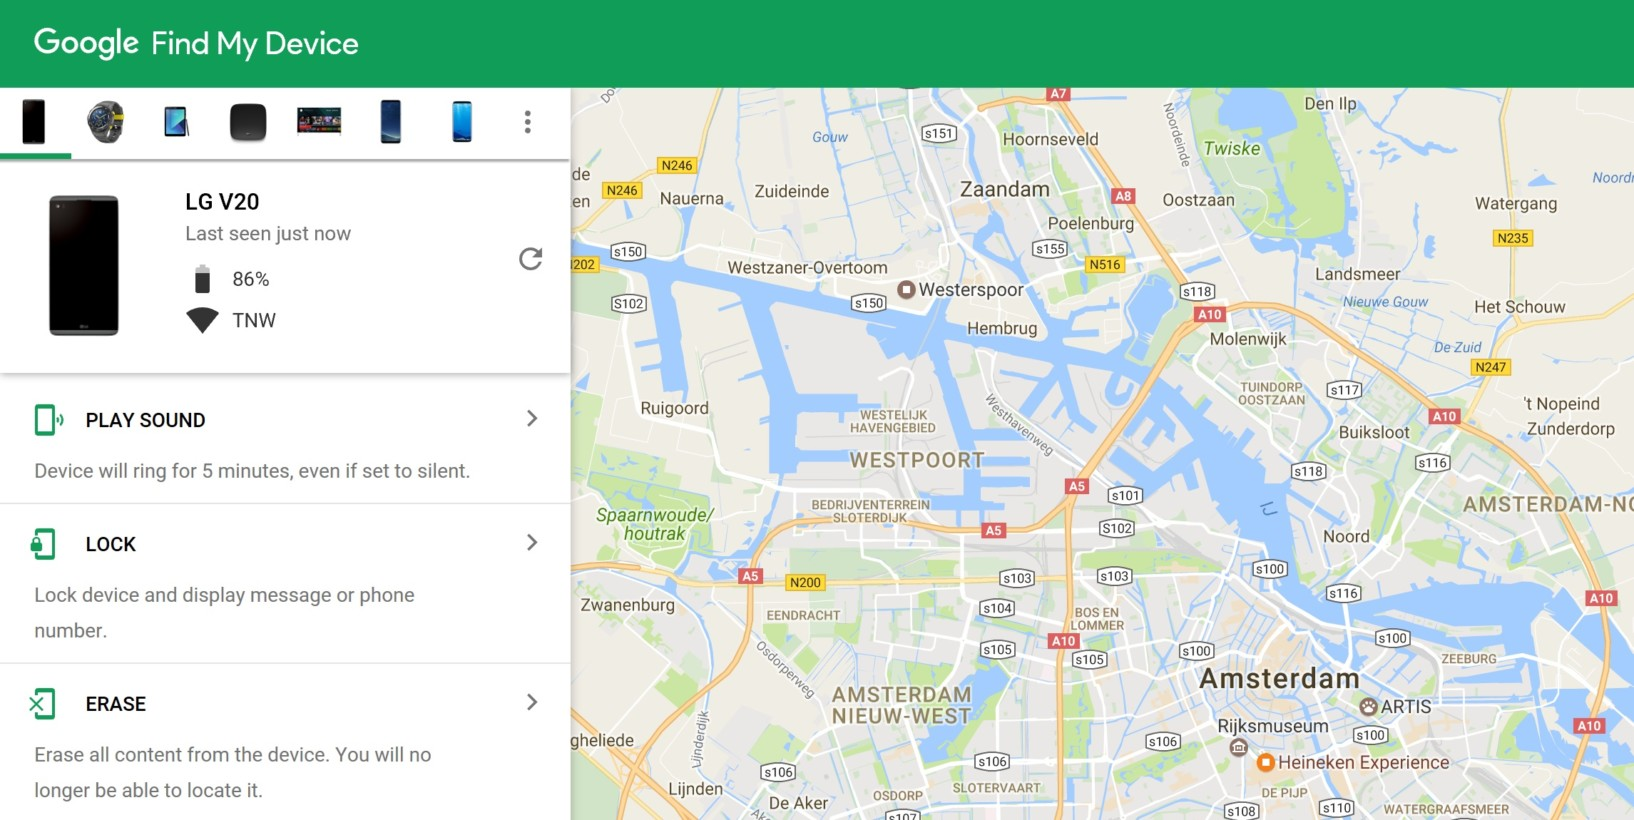 Find Manager android device manager is now find my device